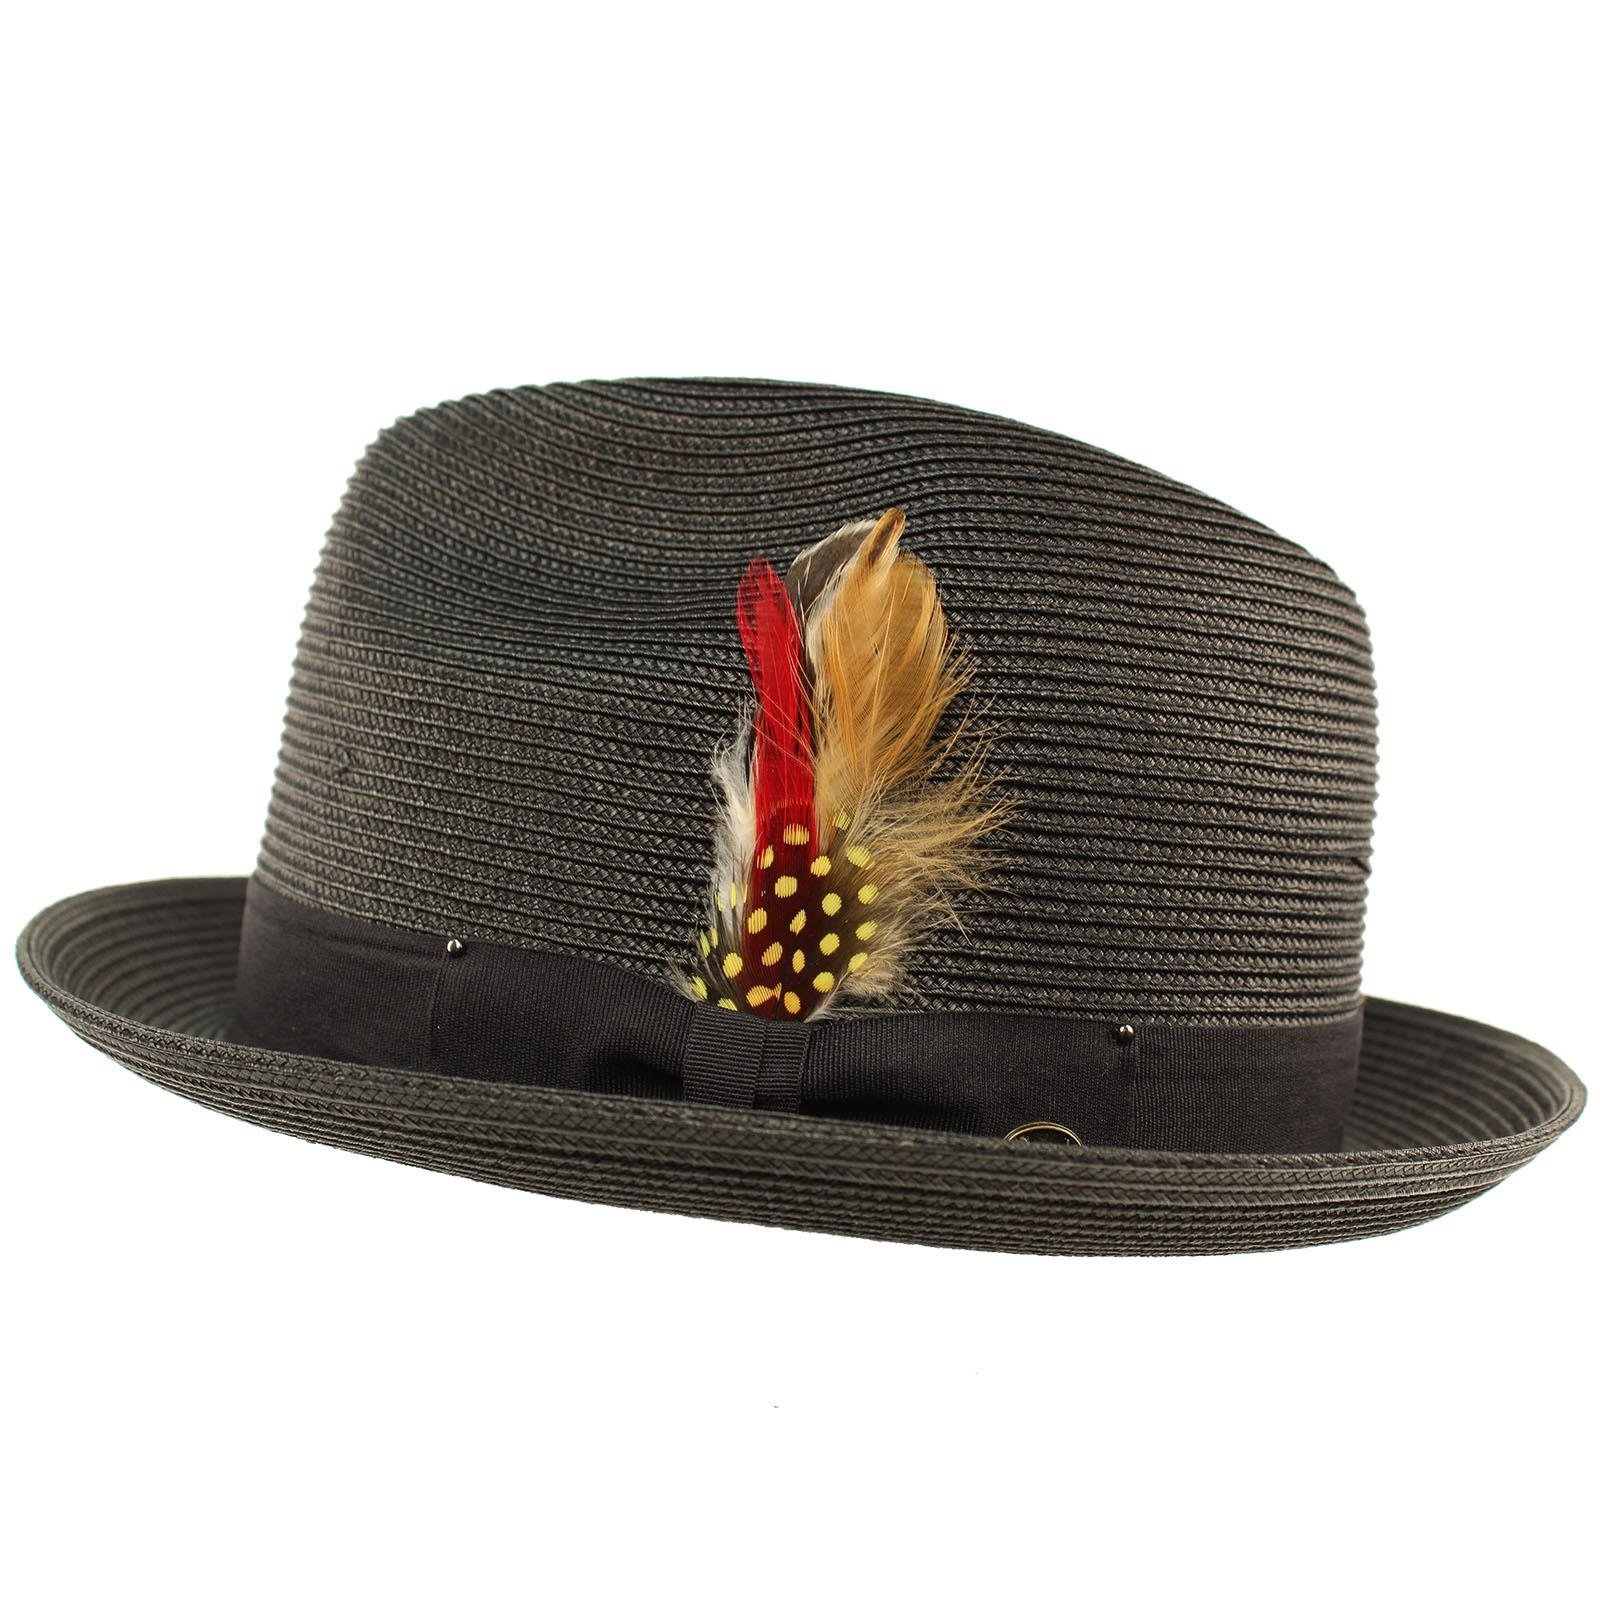 SK Hat shop Men's Light Removable Feather Derby Fedora Wide Curled Brim Hat L/XL